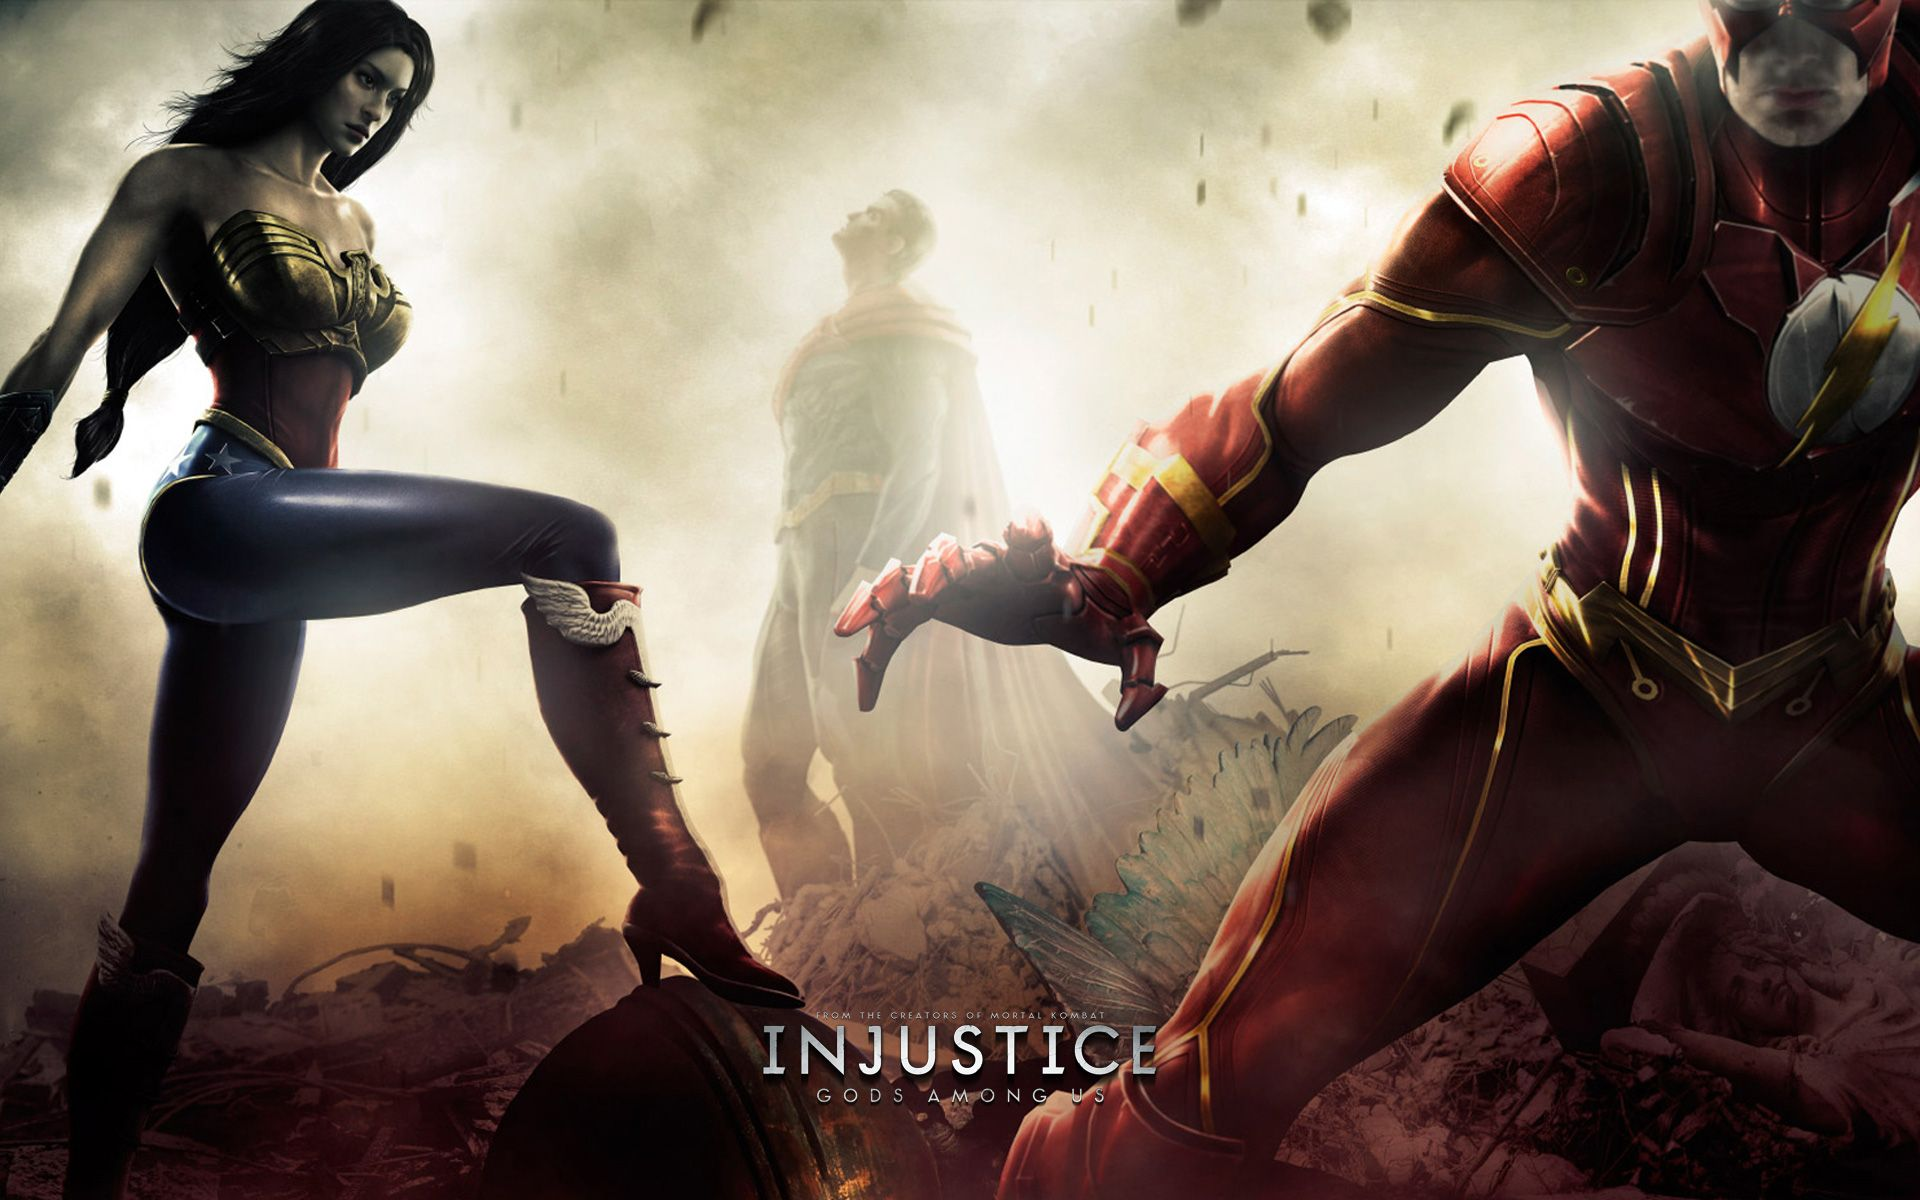 Injustice Gods Among Us Wonder Woman Artwork Jpg 1920 1200 Wonder Woman Injustice Animation Movie